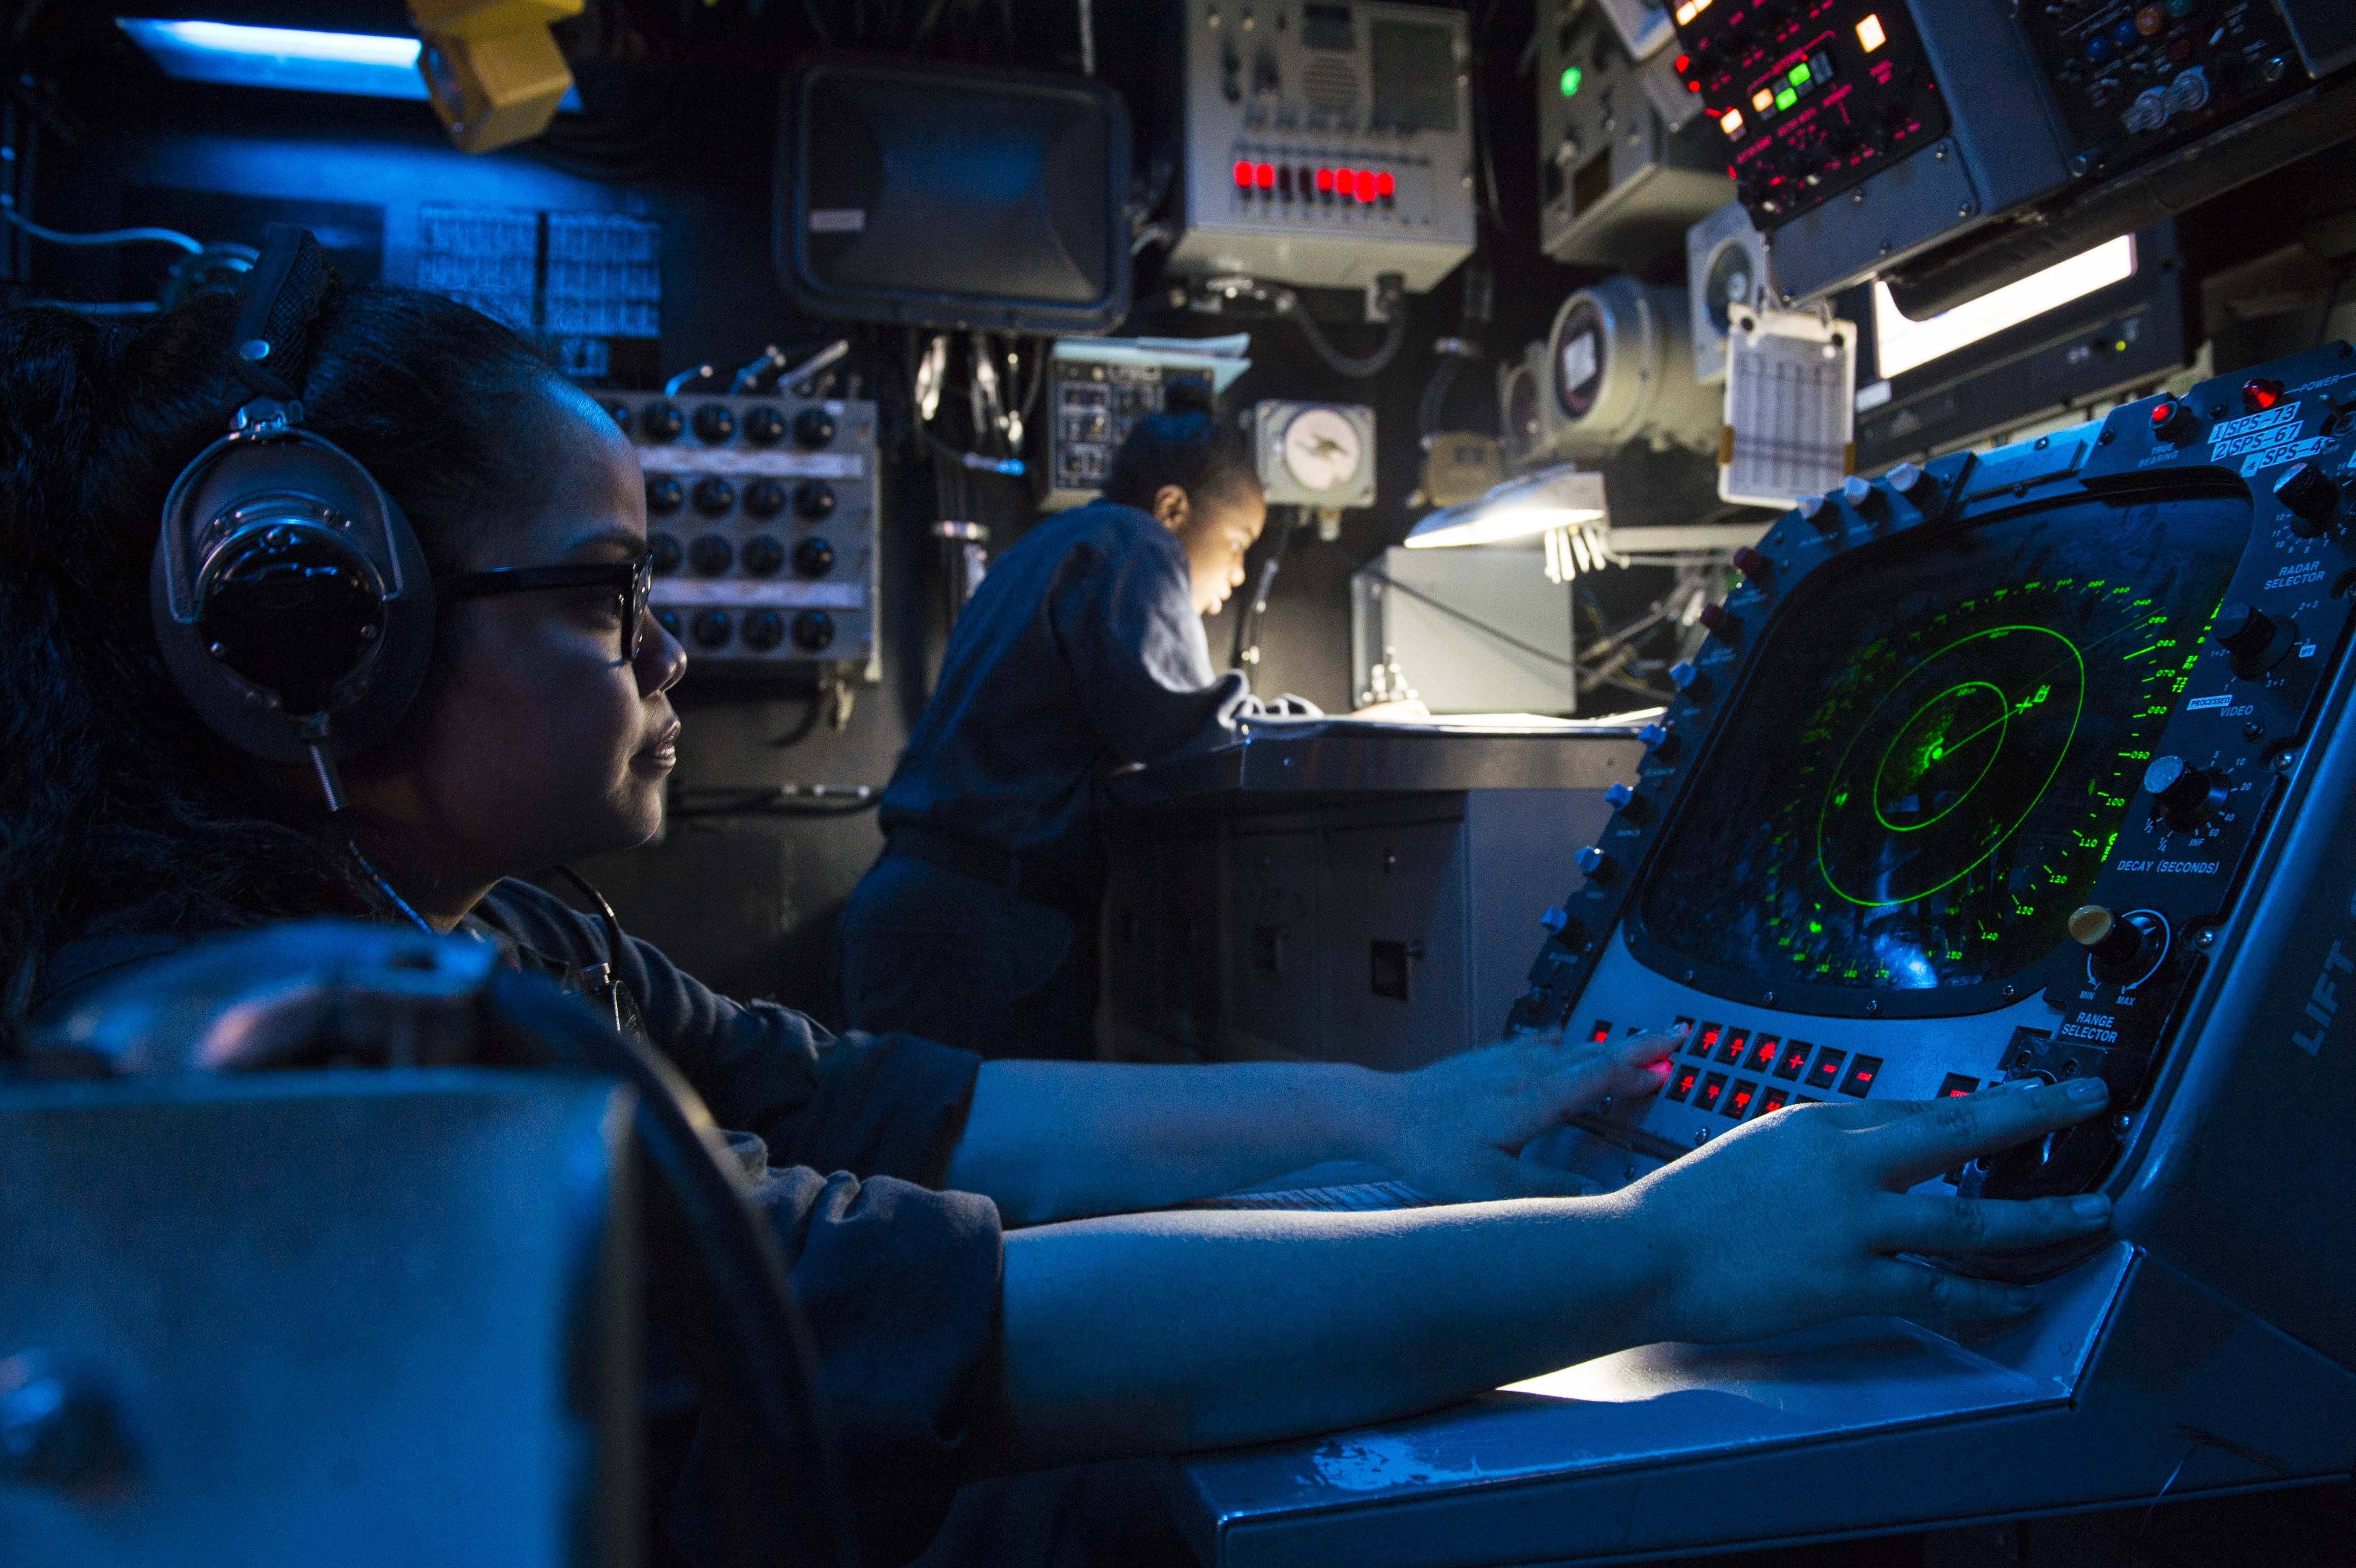 us navy operations specialist 3rd class inside the combat information center cic of the uss harpers ferry lsd 49